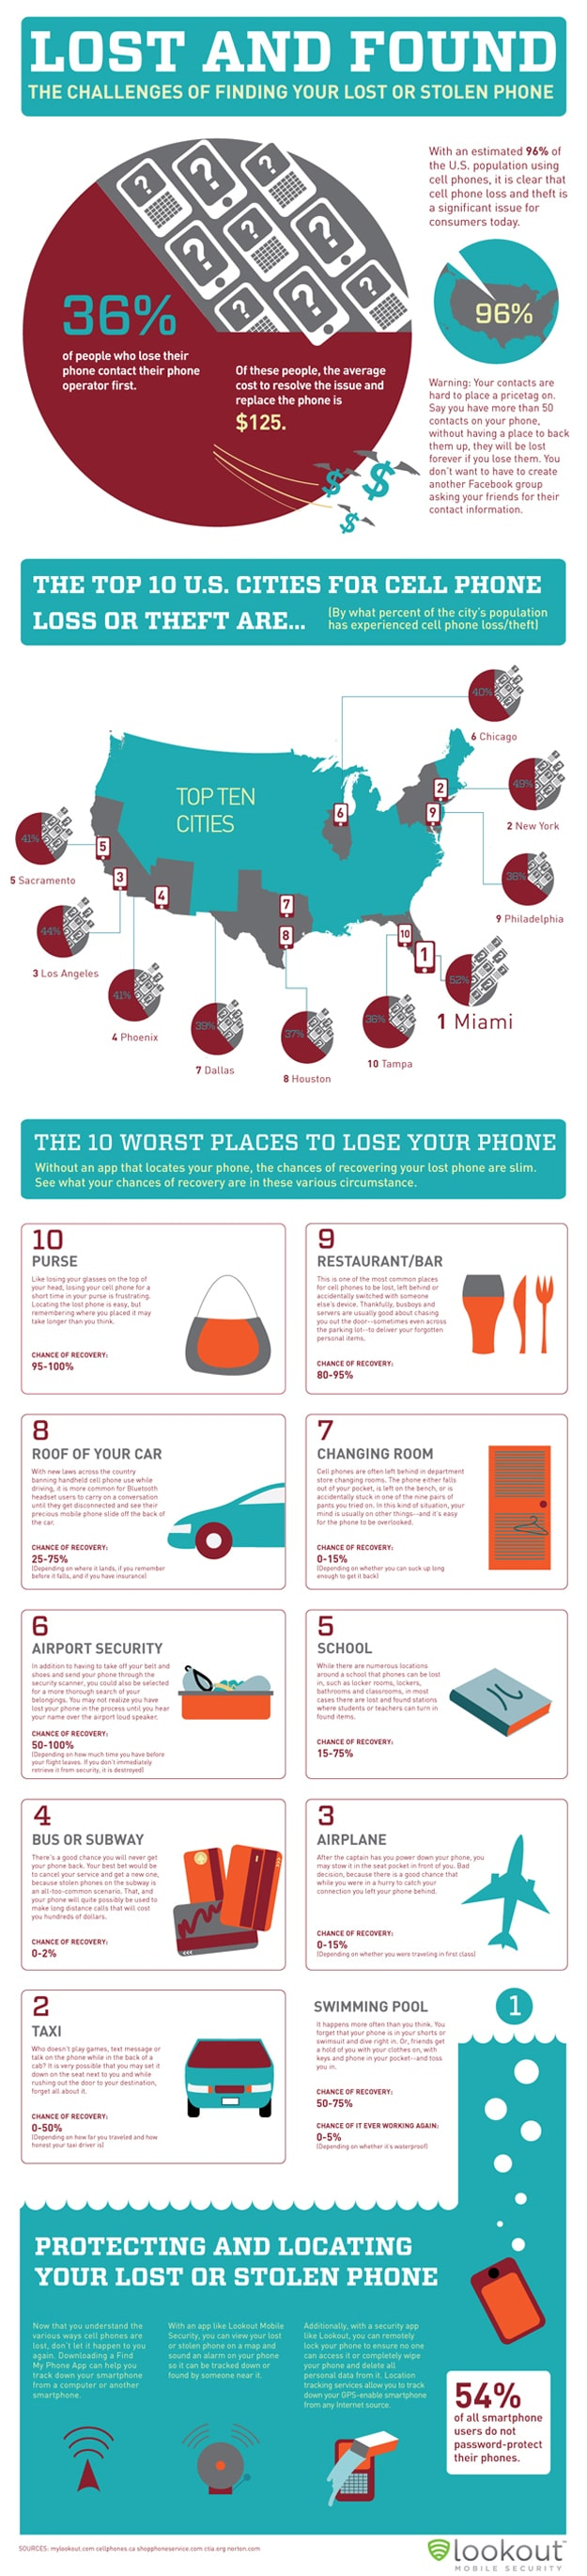 Worst Places To Lose iPhone